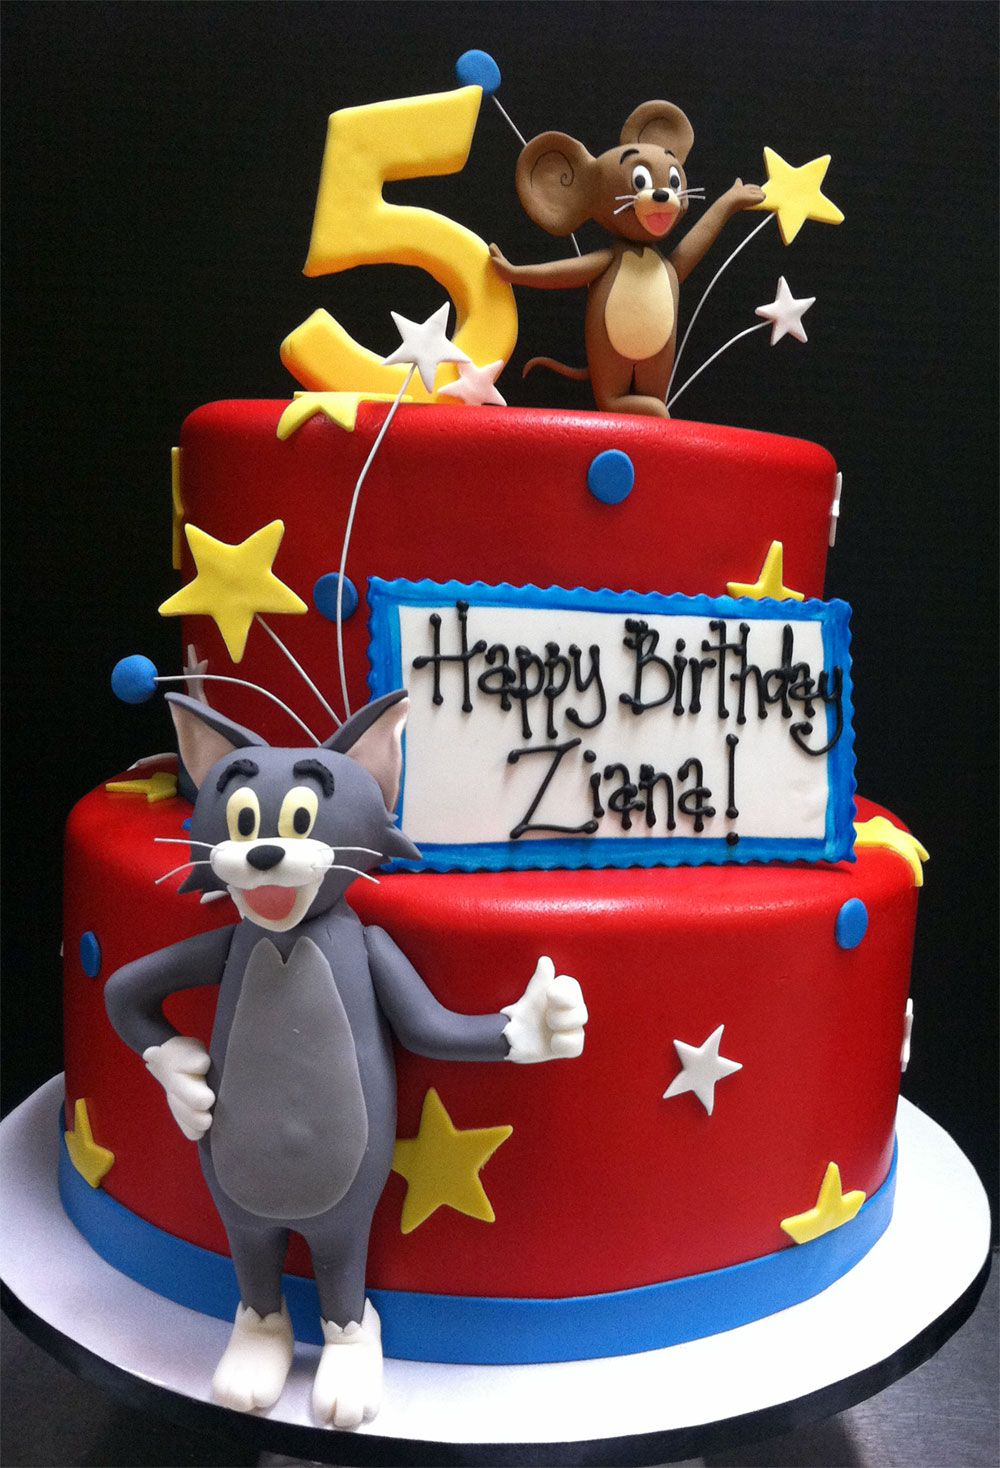 Kids Cakes Cakes Pinterest Cake and Birthdays